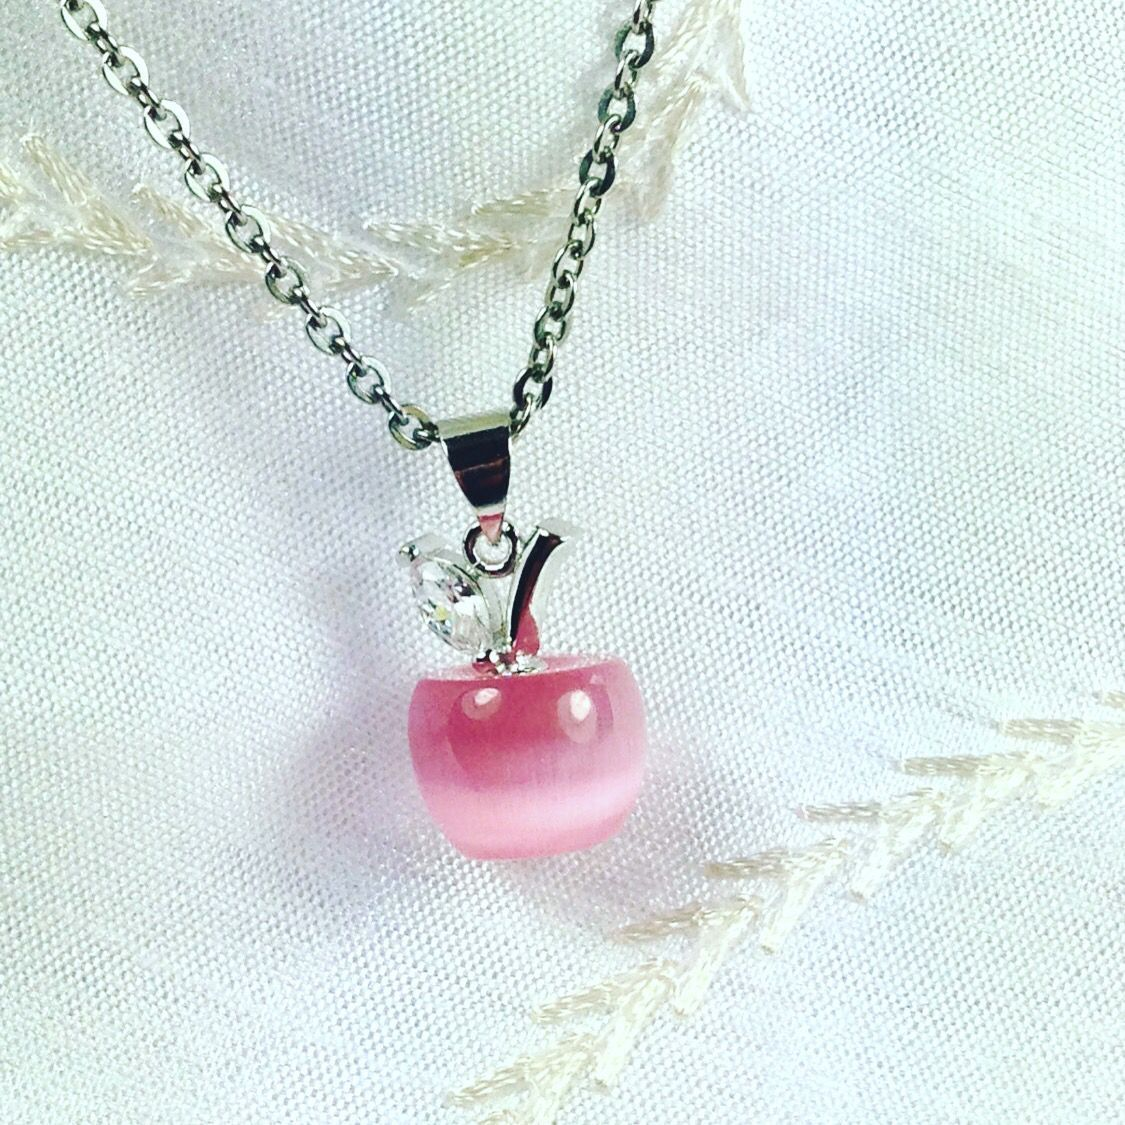 Cat&#39;s Eye #Apple #Necklace w/ #Crystal Leaf #Handmade #NorthCoastCottage #Jewelry  https:// buff.ly/2xXJA4S  &nbsp;   #pink #MothersDay #shopping #gift<br>http://pic.twitter.com/FxBsmeRVAY